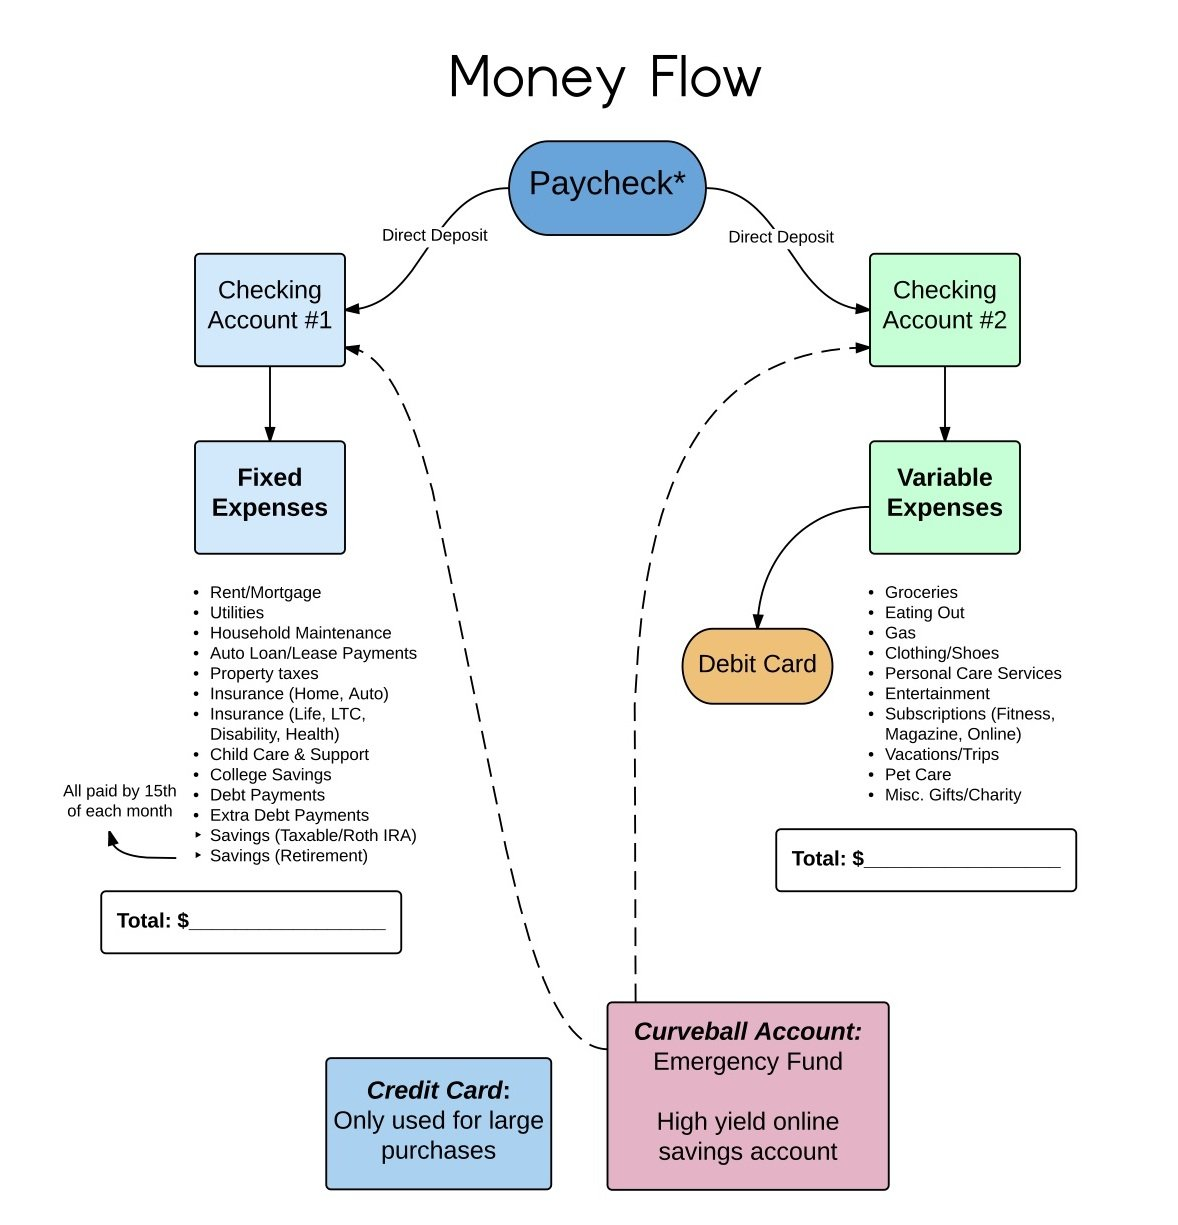 A smart system to track your money flow nerdwallet money flow chart geenschuldenfo Choice Image